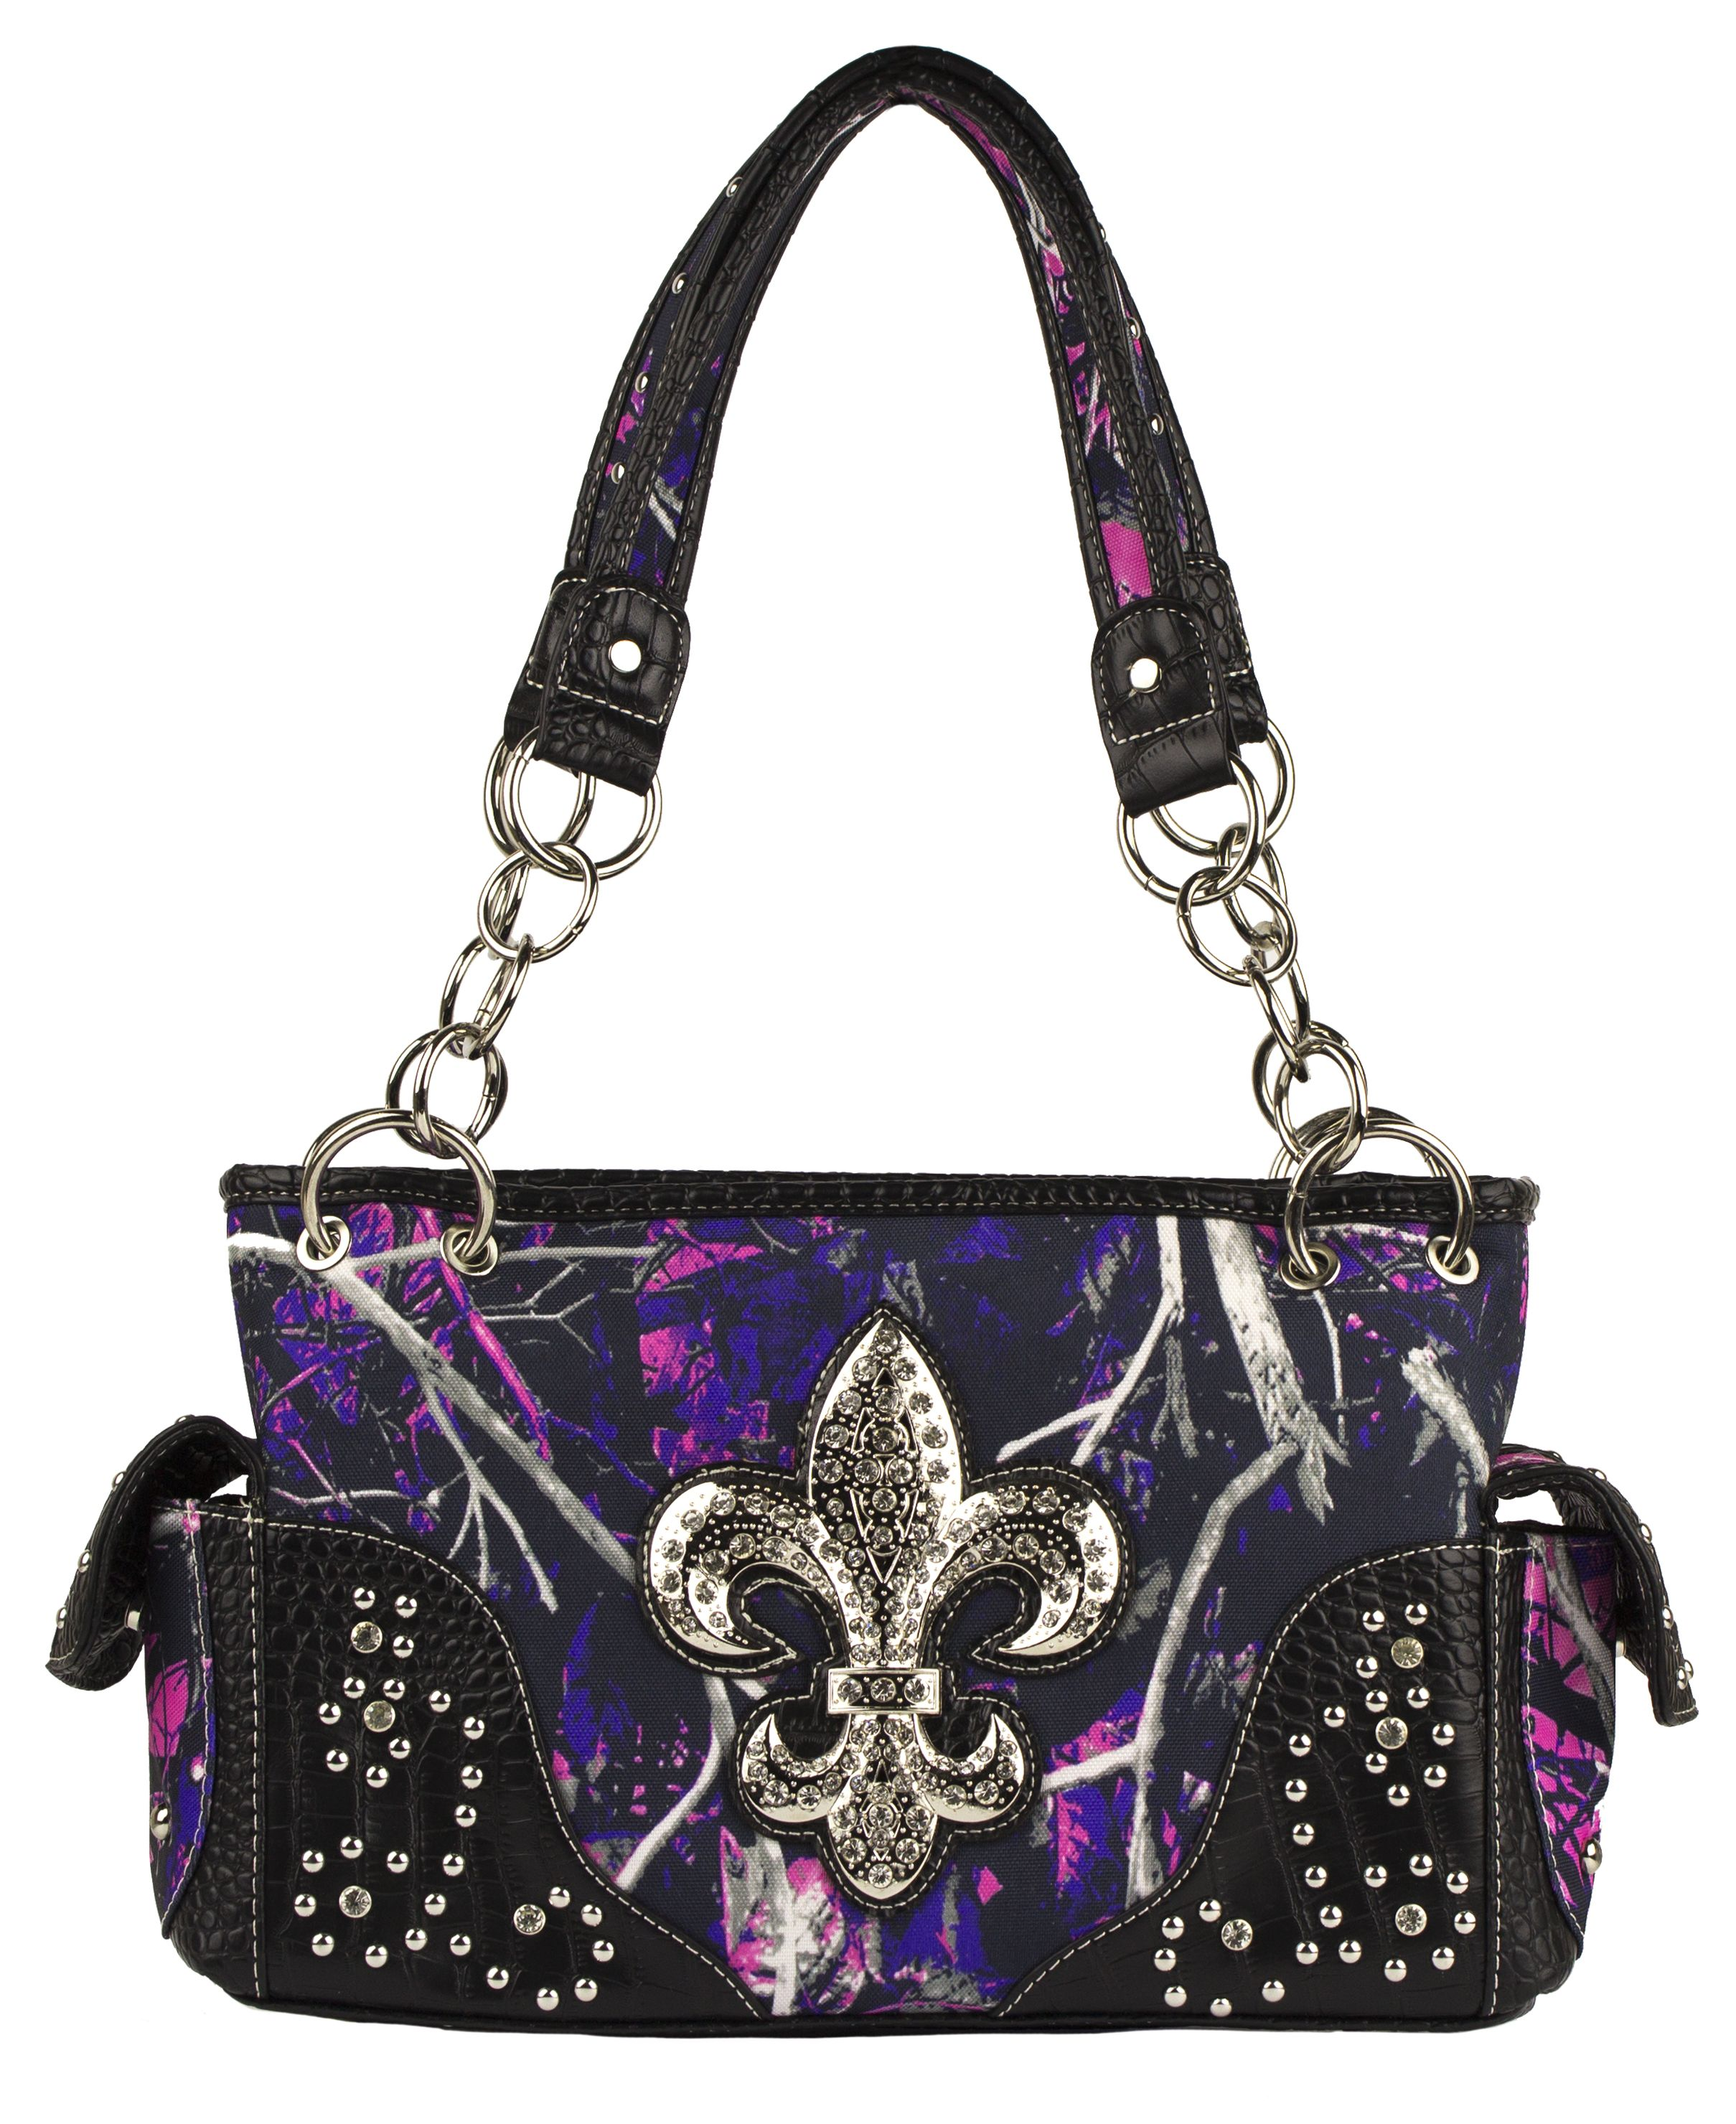 693ad4434b7b Moon Shine Muddy GIrl Conceal   Carry Handbag! Large Rhinestone Fleur De  Lis!